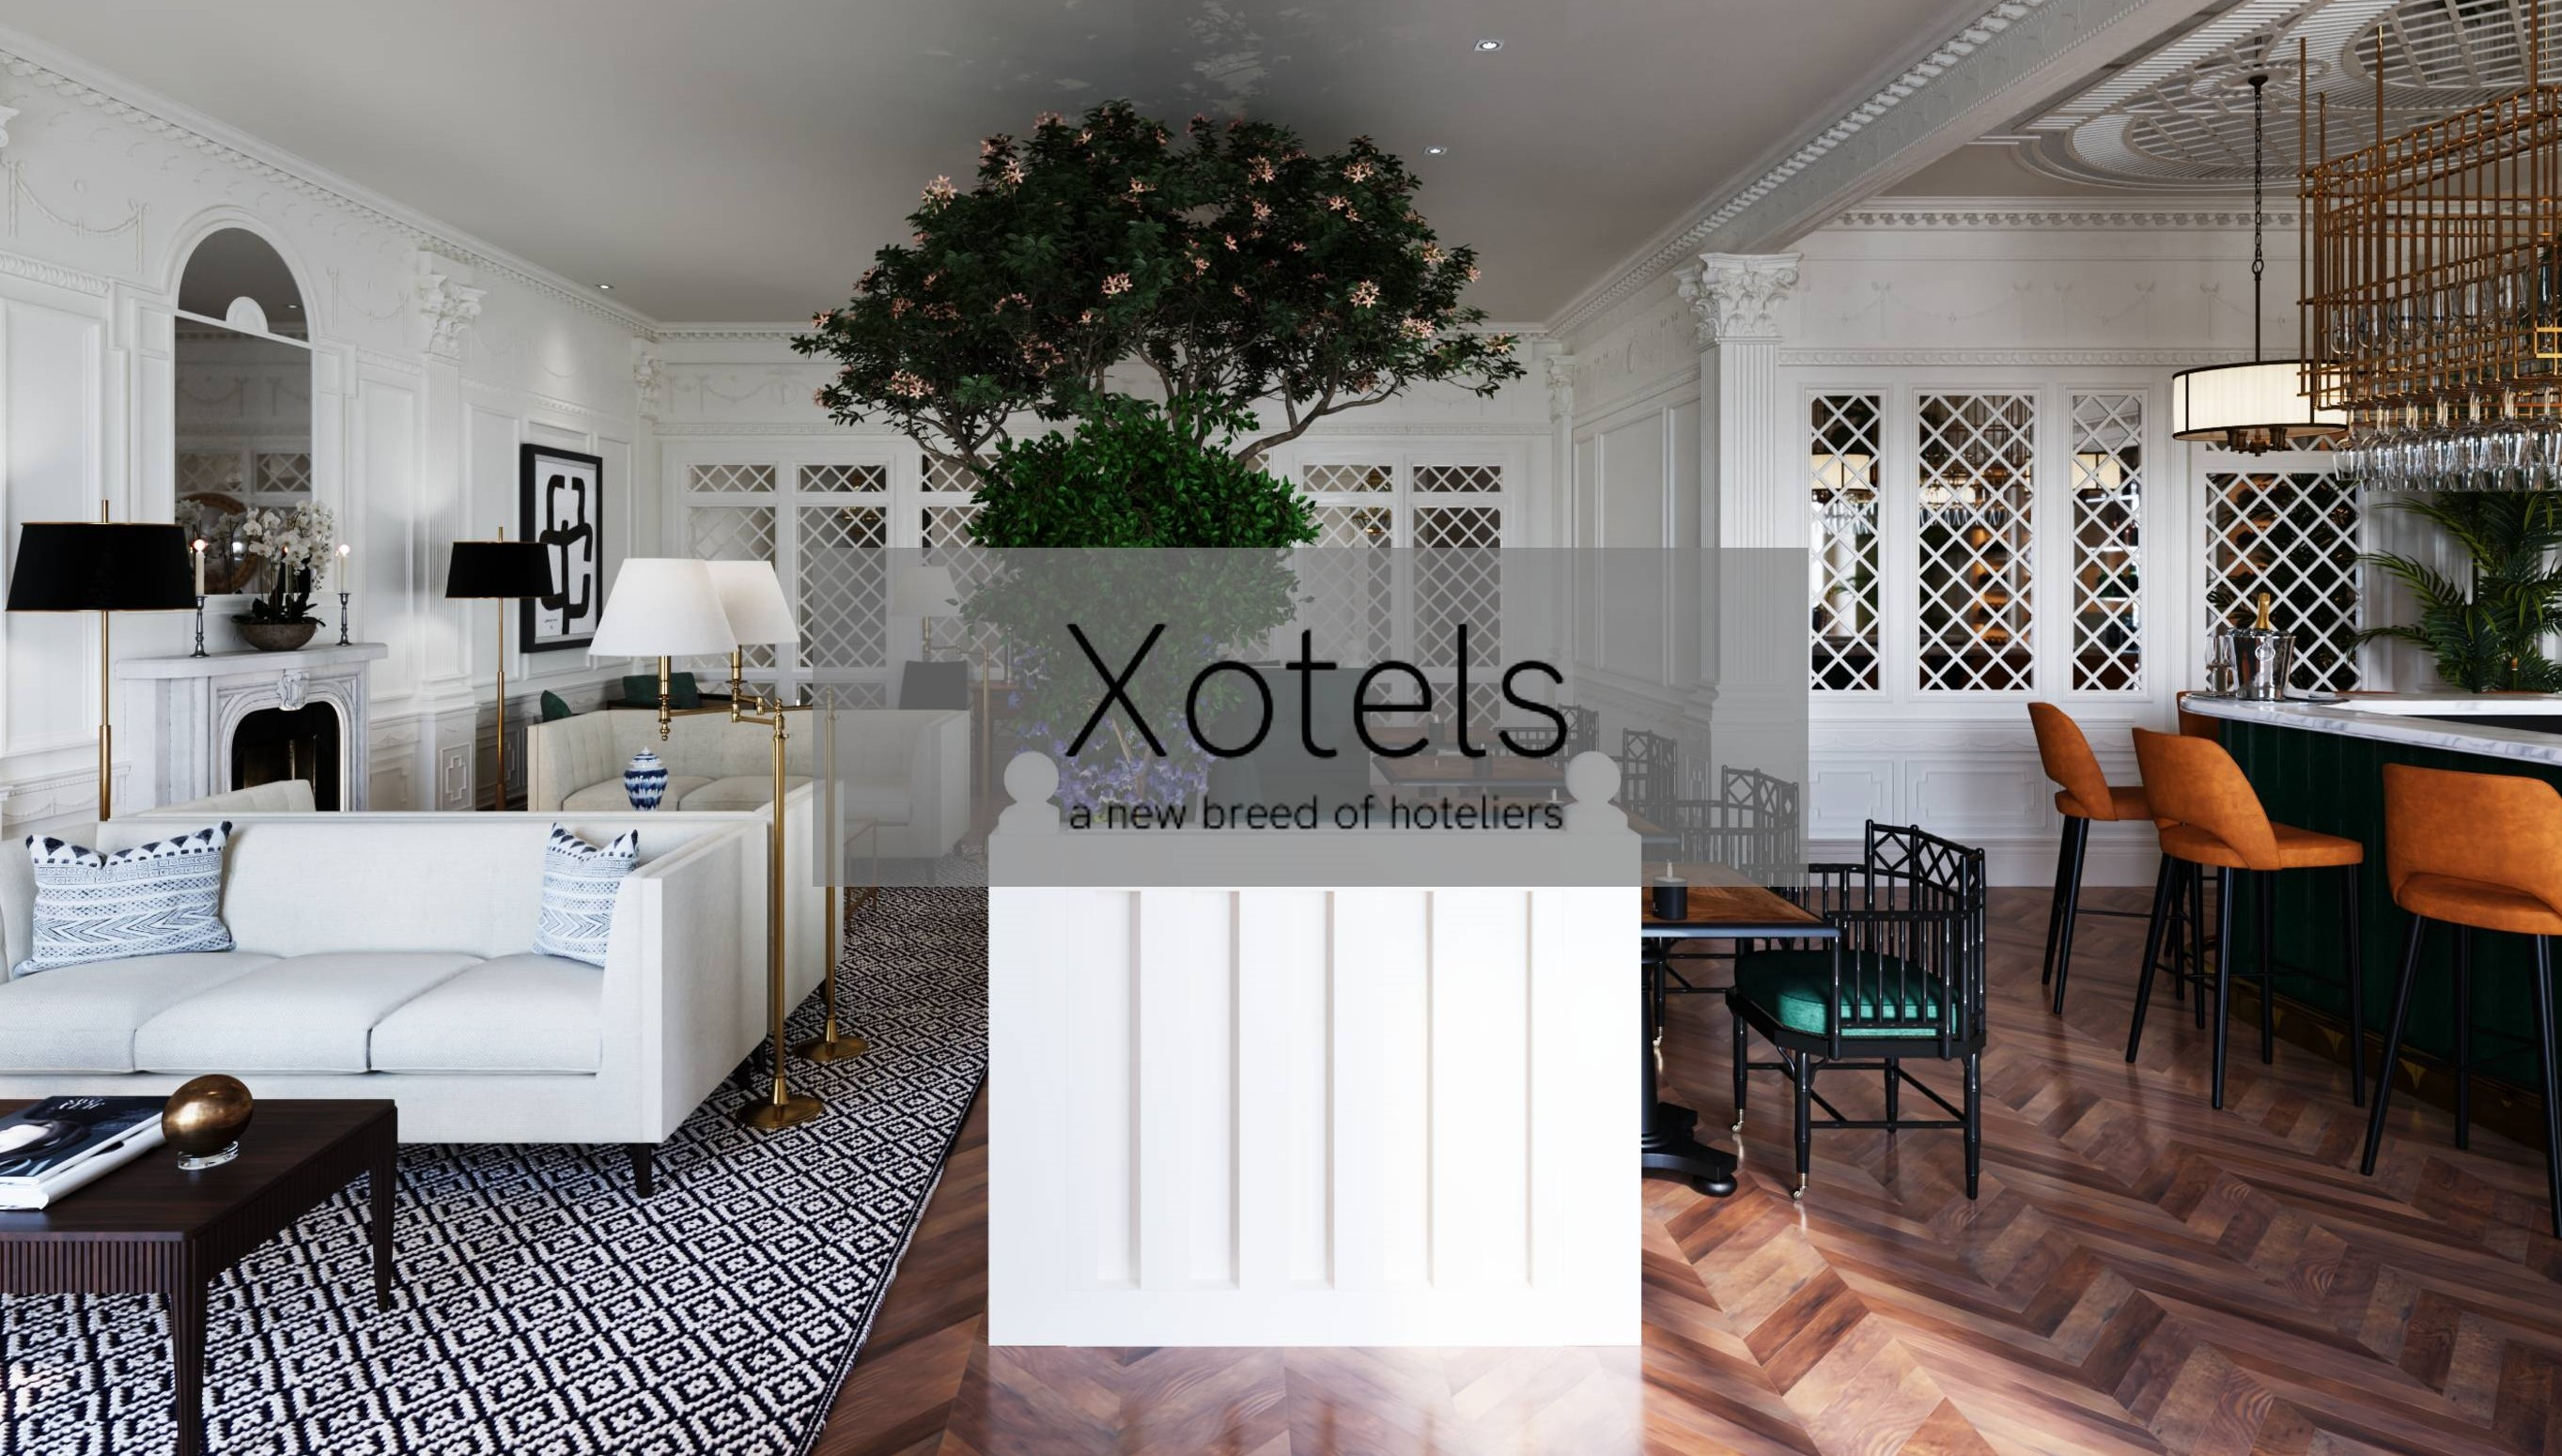 Xotels Hotel Management Company Linkedin